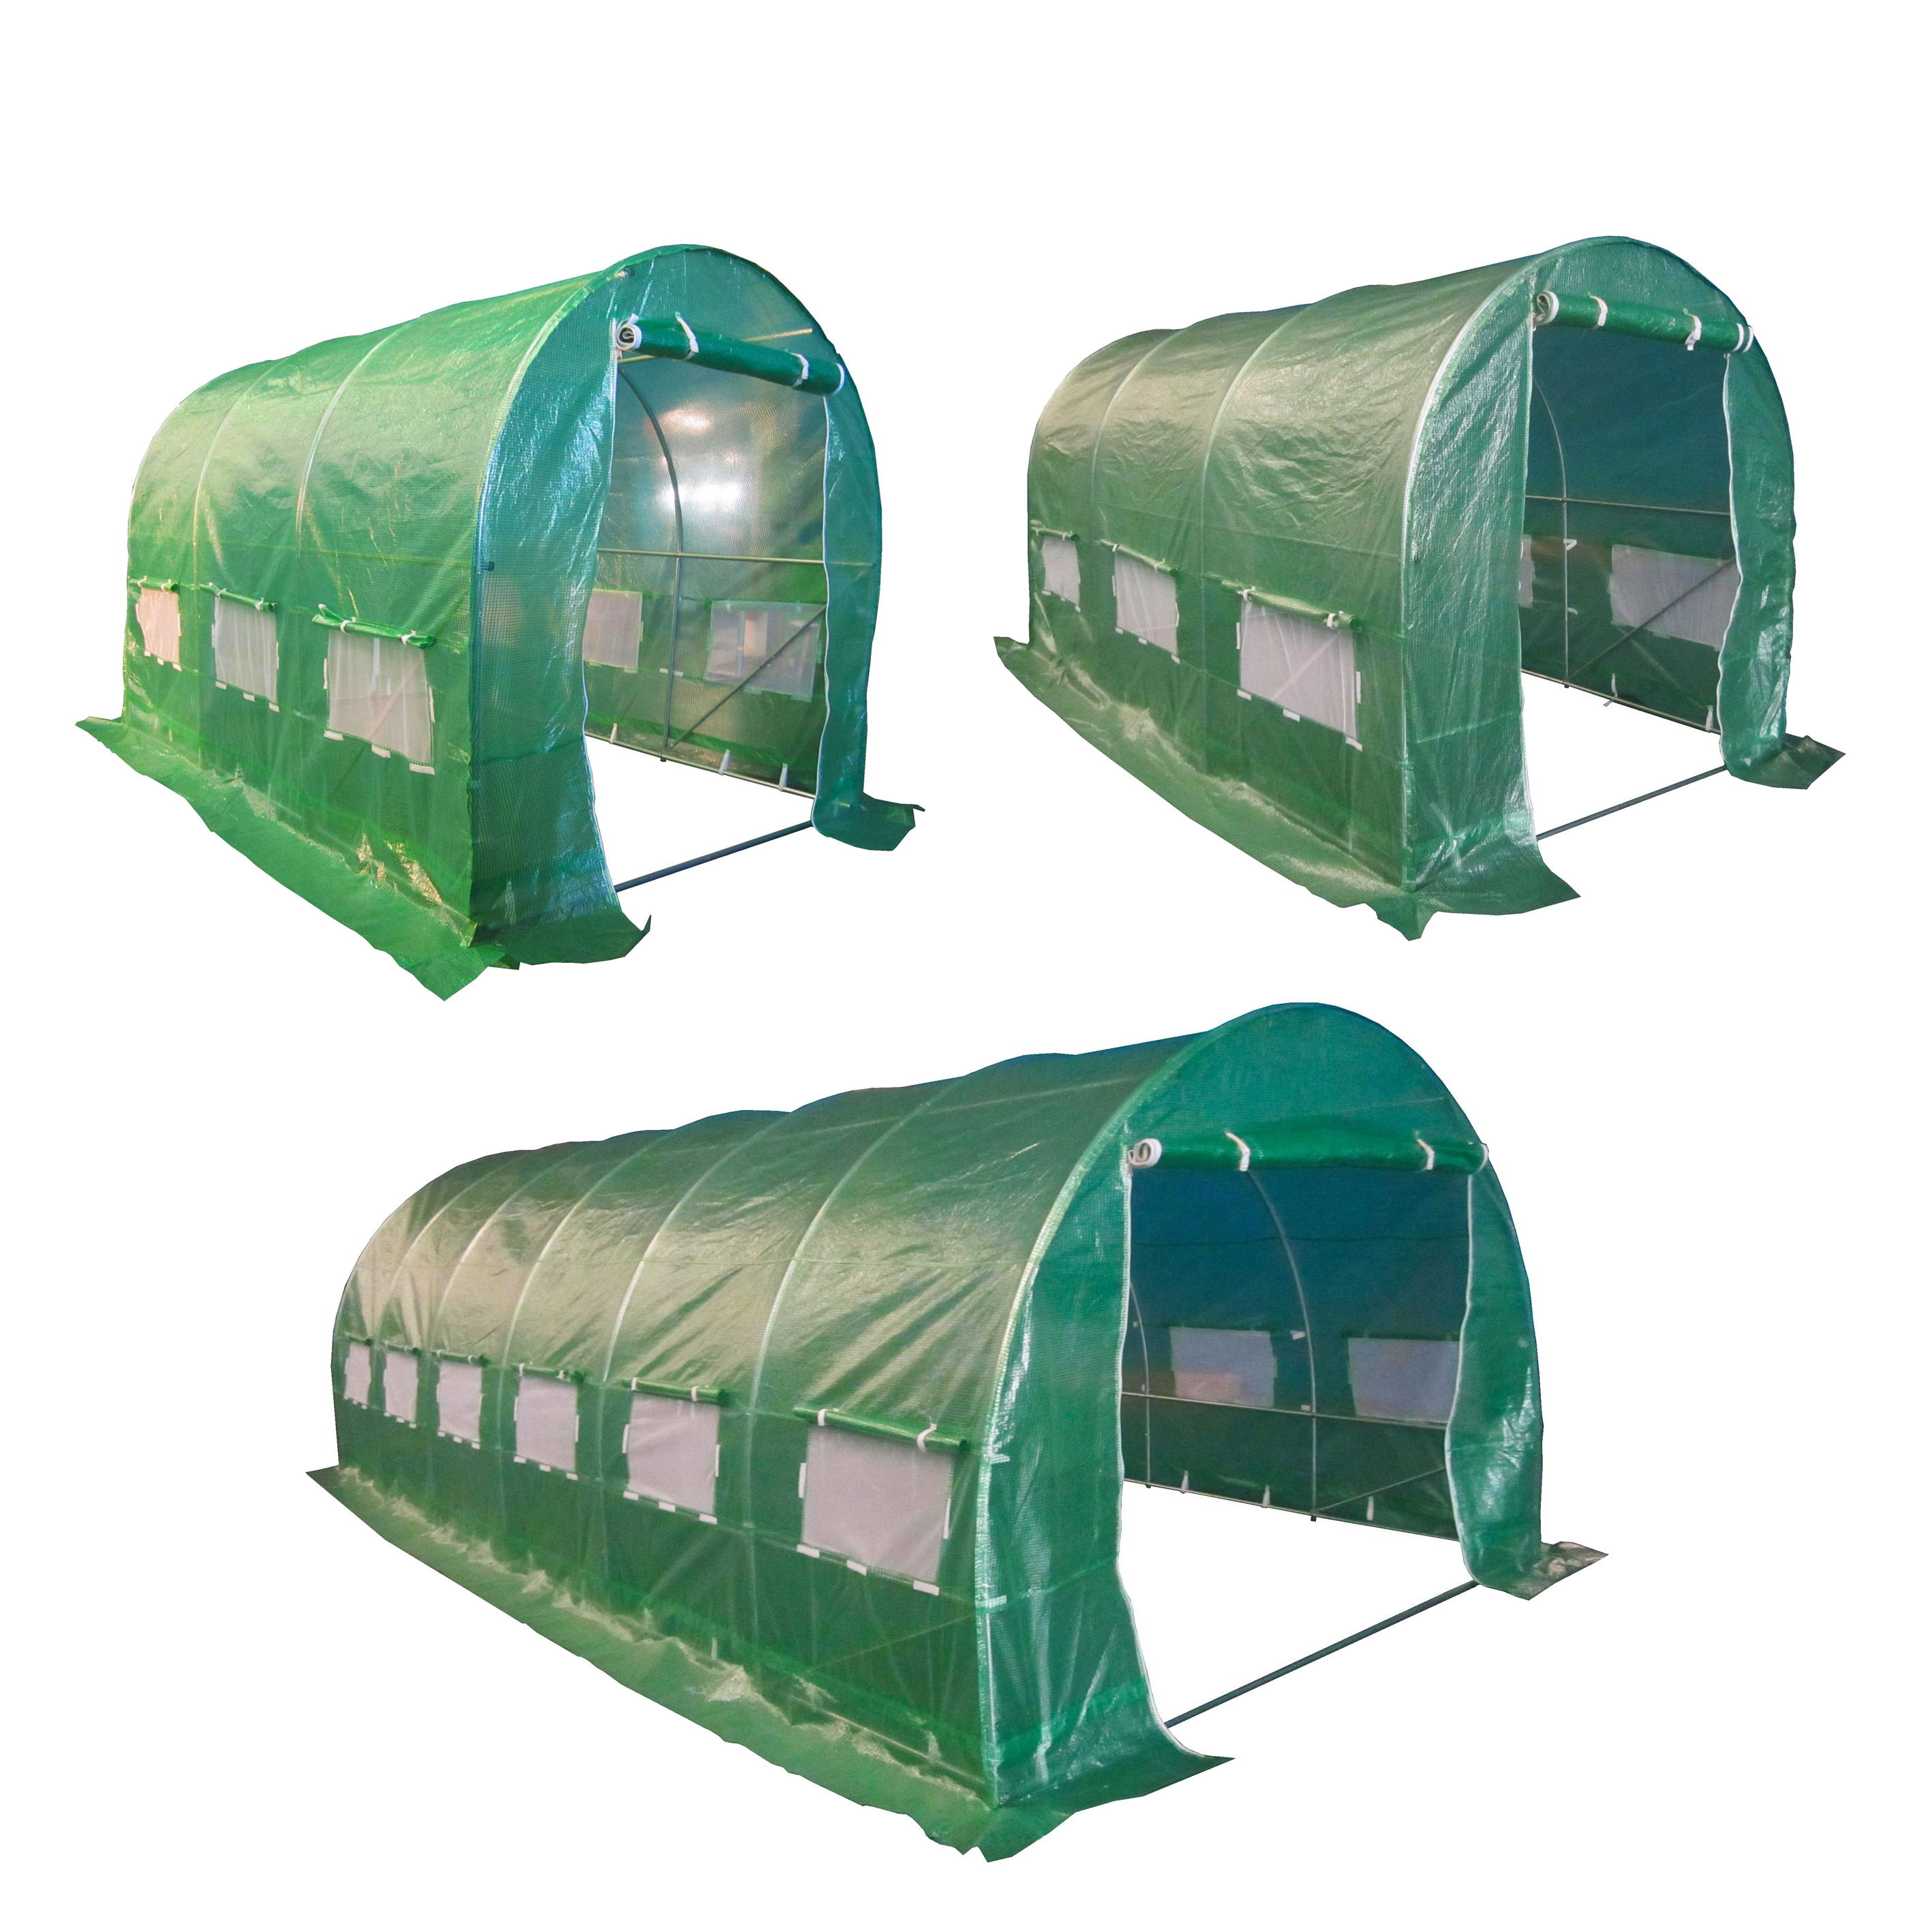 polytunnel gew chshaus pollytunnel polyester folientunnel abdeckung ersatzteil ebay. Black Bedroom Furniture Sets. Home Design Ideas